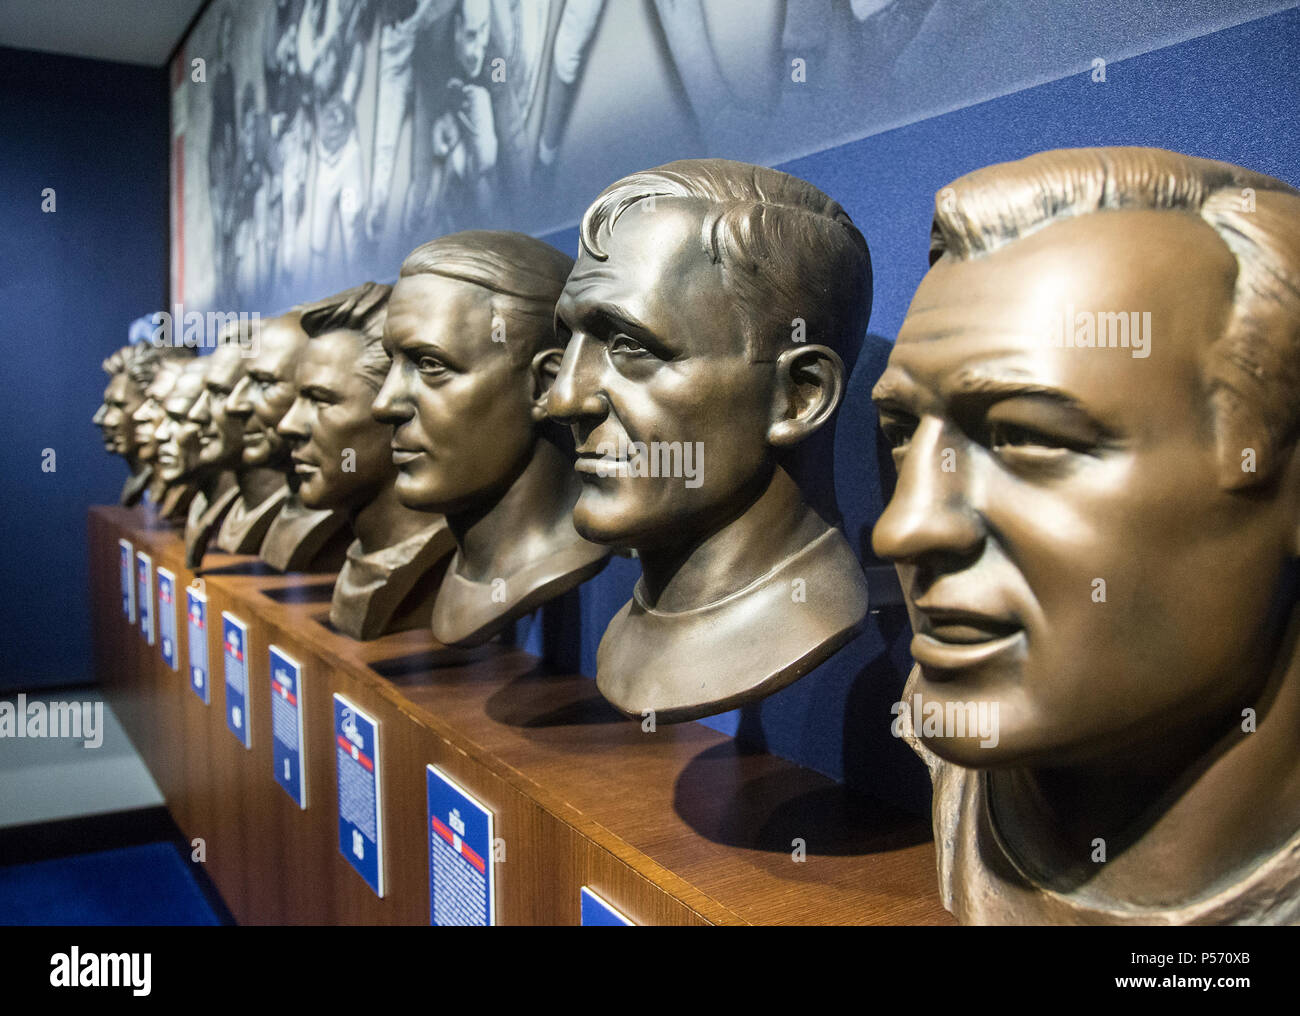 Busts of famous NY Giants on display in the Legacy Club at MetLife Stadium - Stock Image